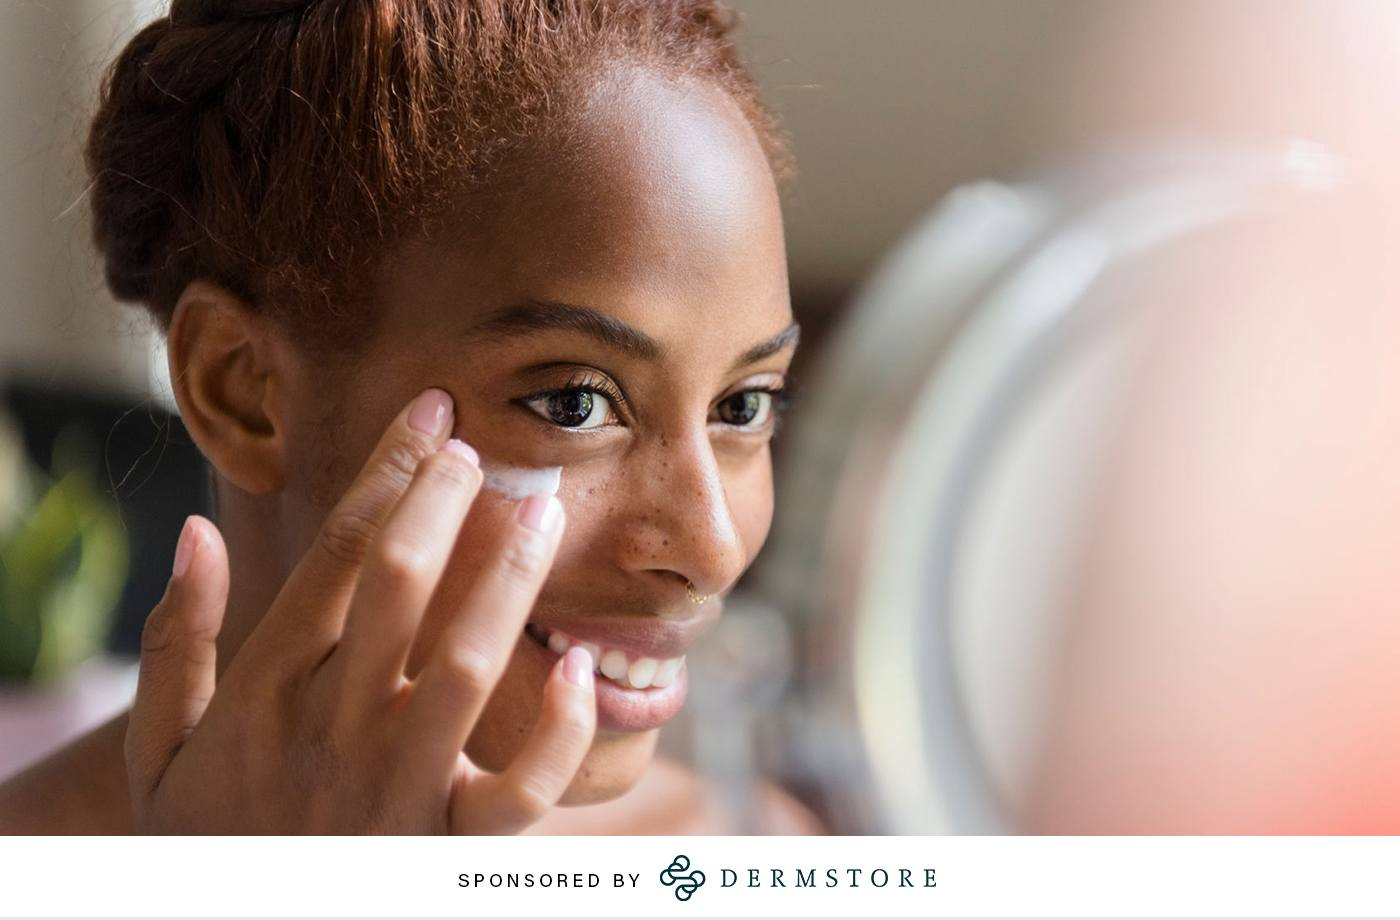 Thumbnail for Here's why using organic skin care matters, according to a licensed esthetician